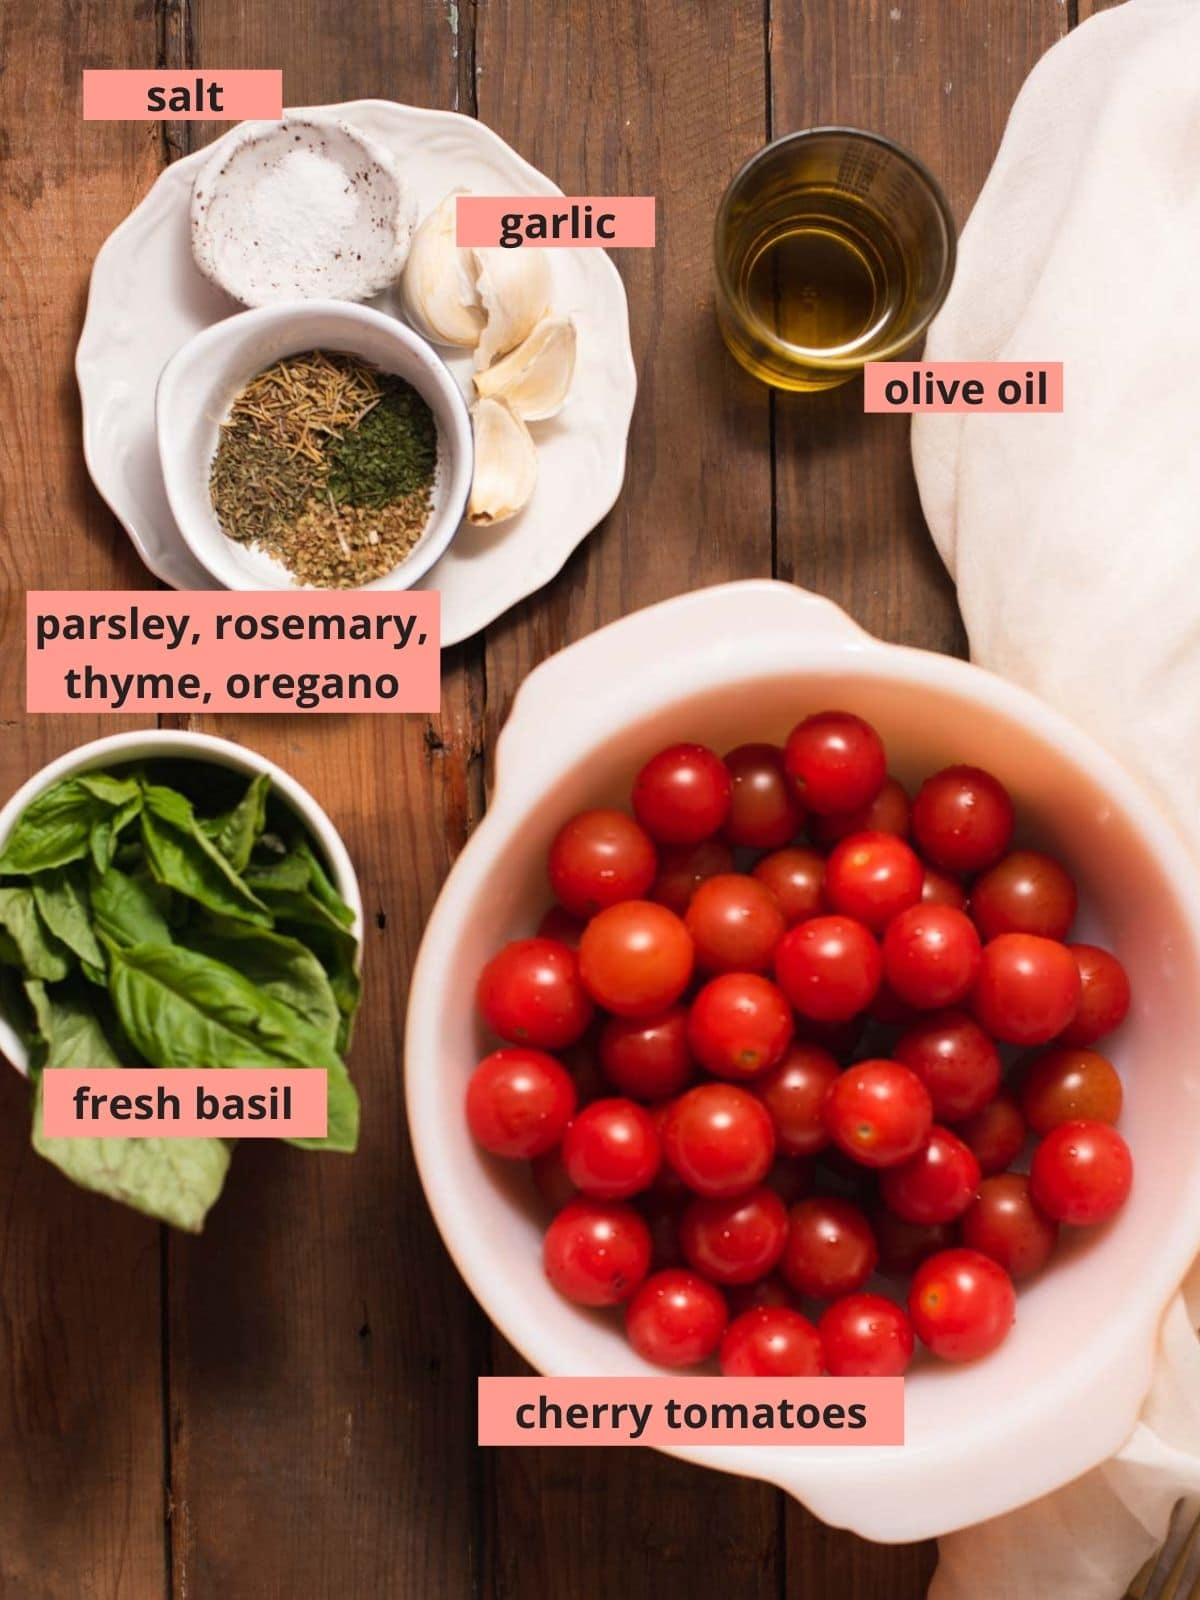 Labeled ingredients used to make cherry tomato sauce